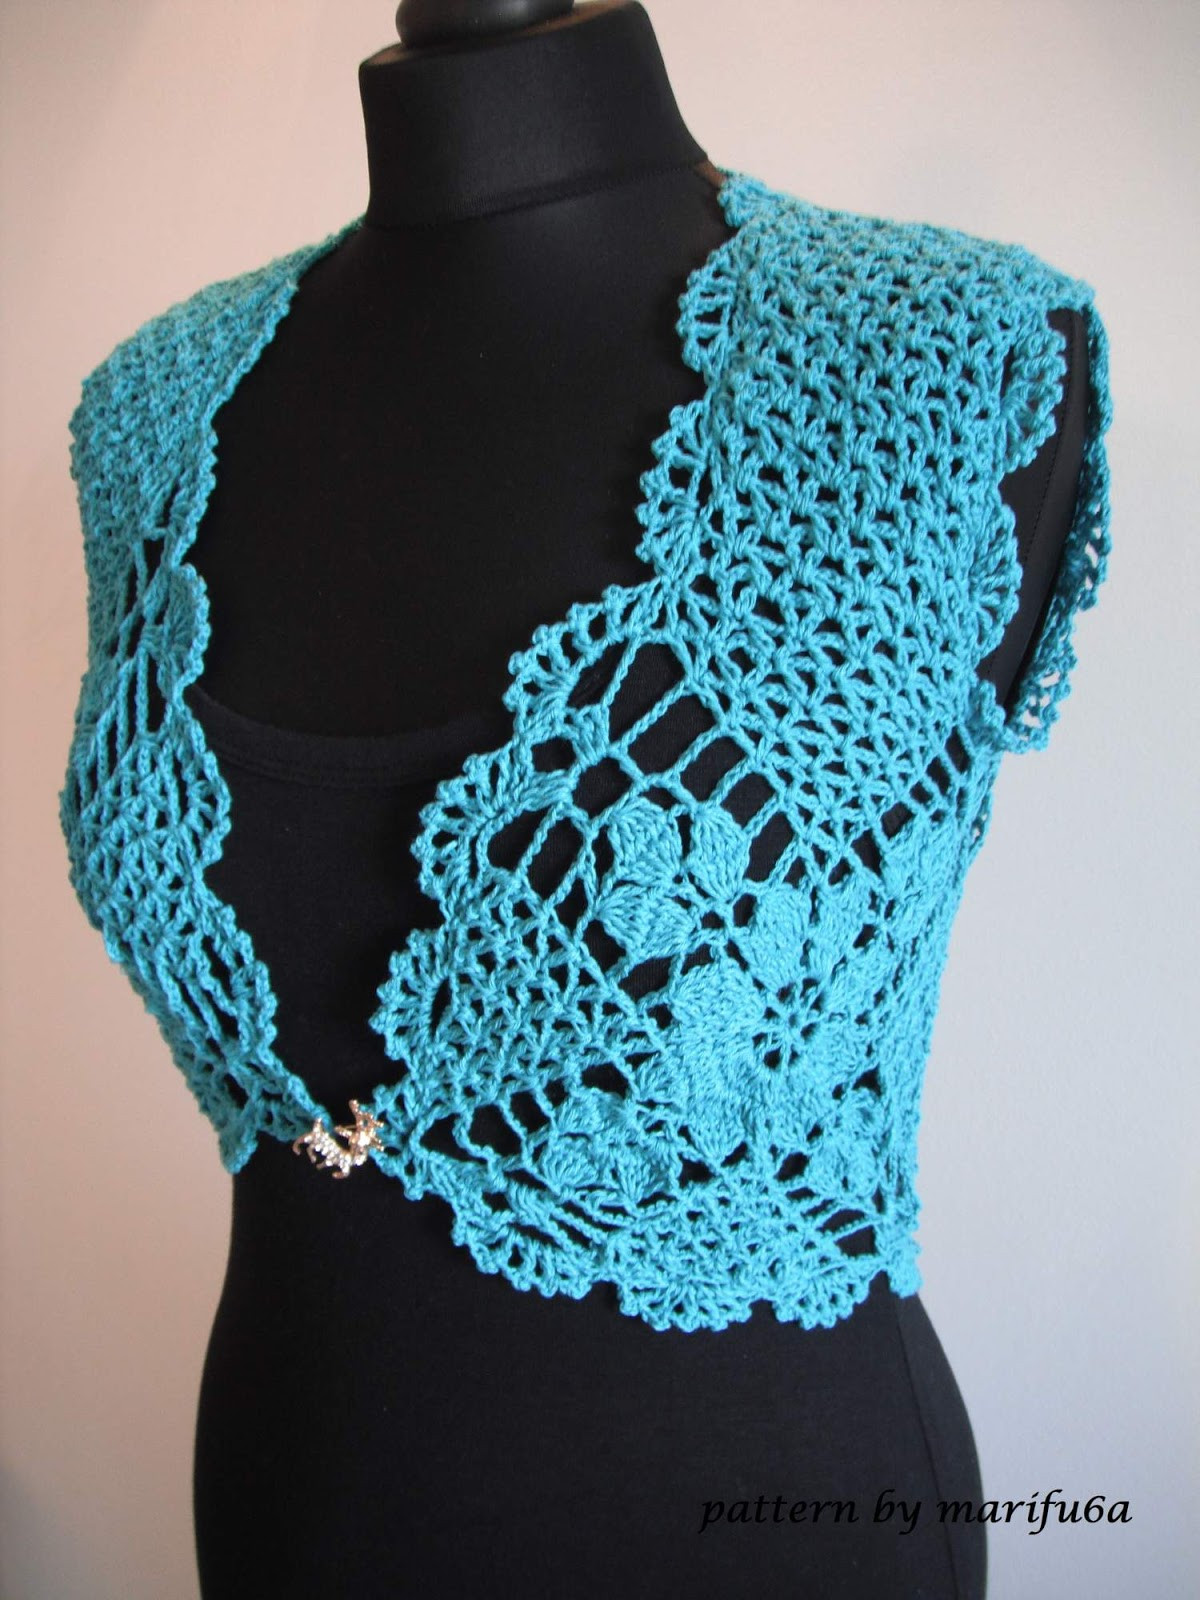 Bolero Pattern Awesome Free Crochet Patterns and Video Tutorials How to Crochet Of Delightful 50 Pictures Bolero Pattern